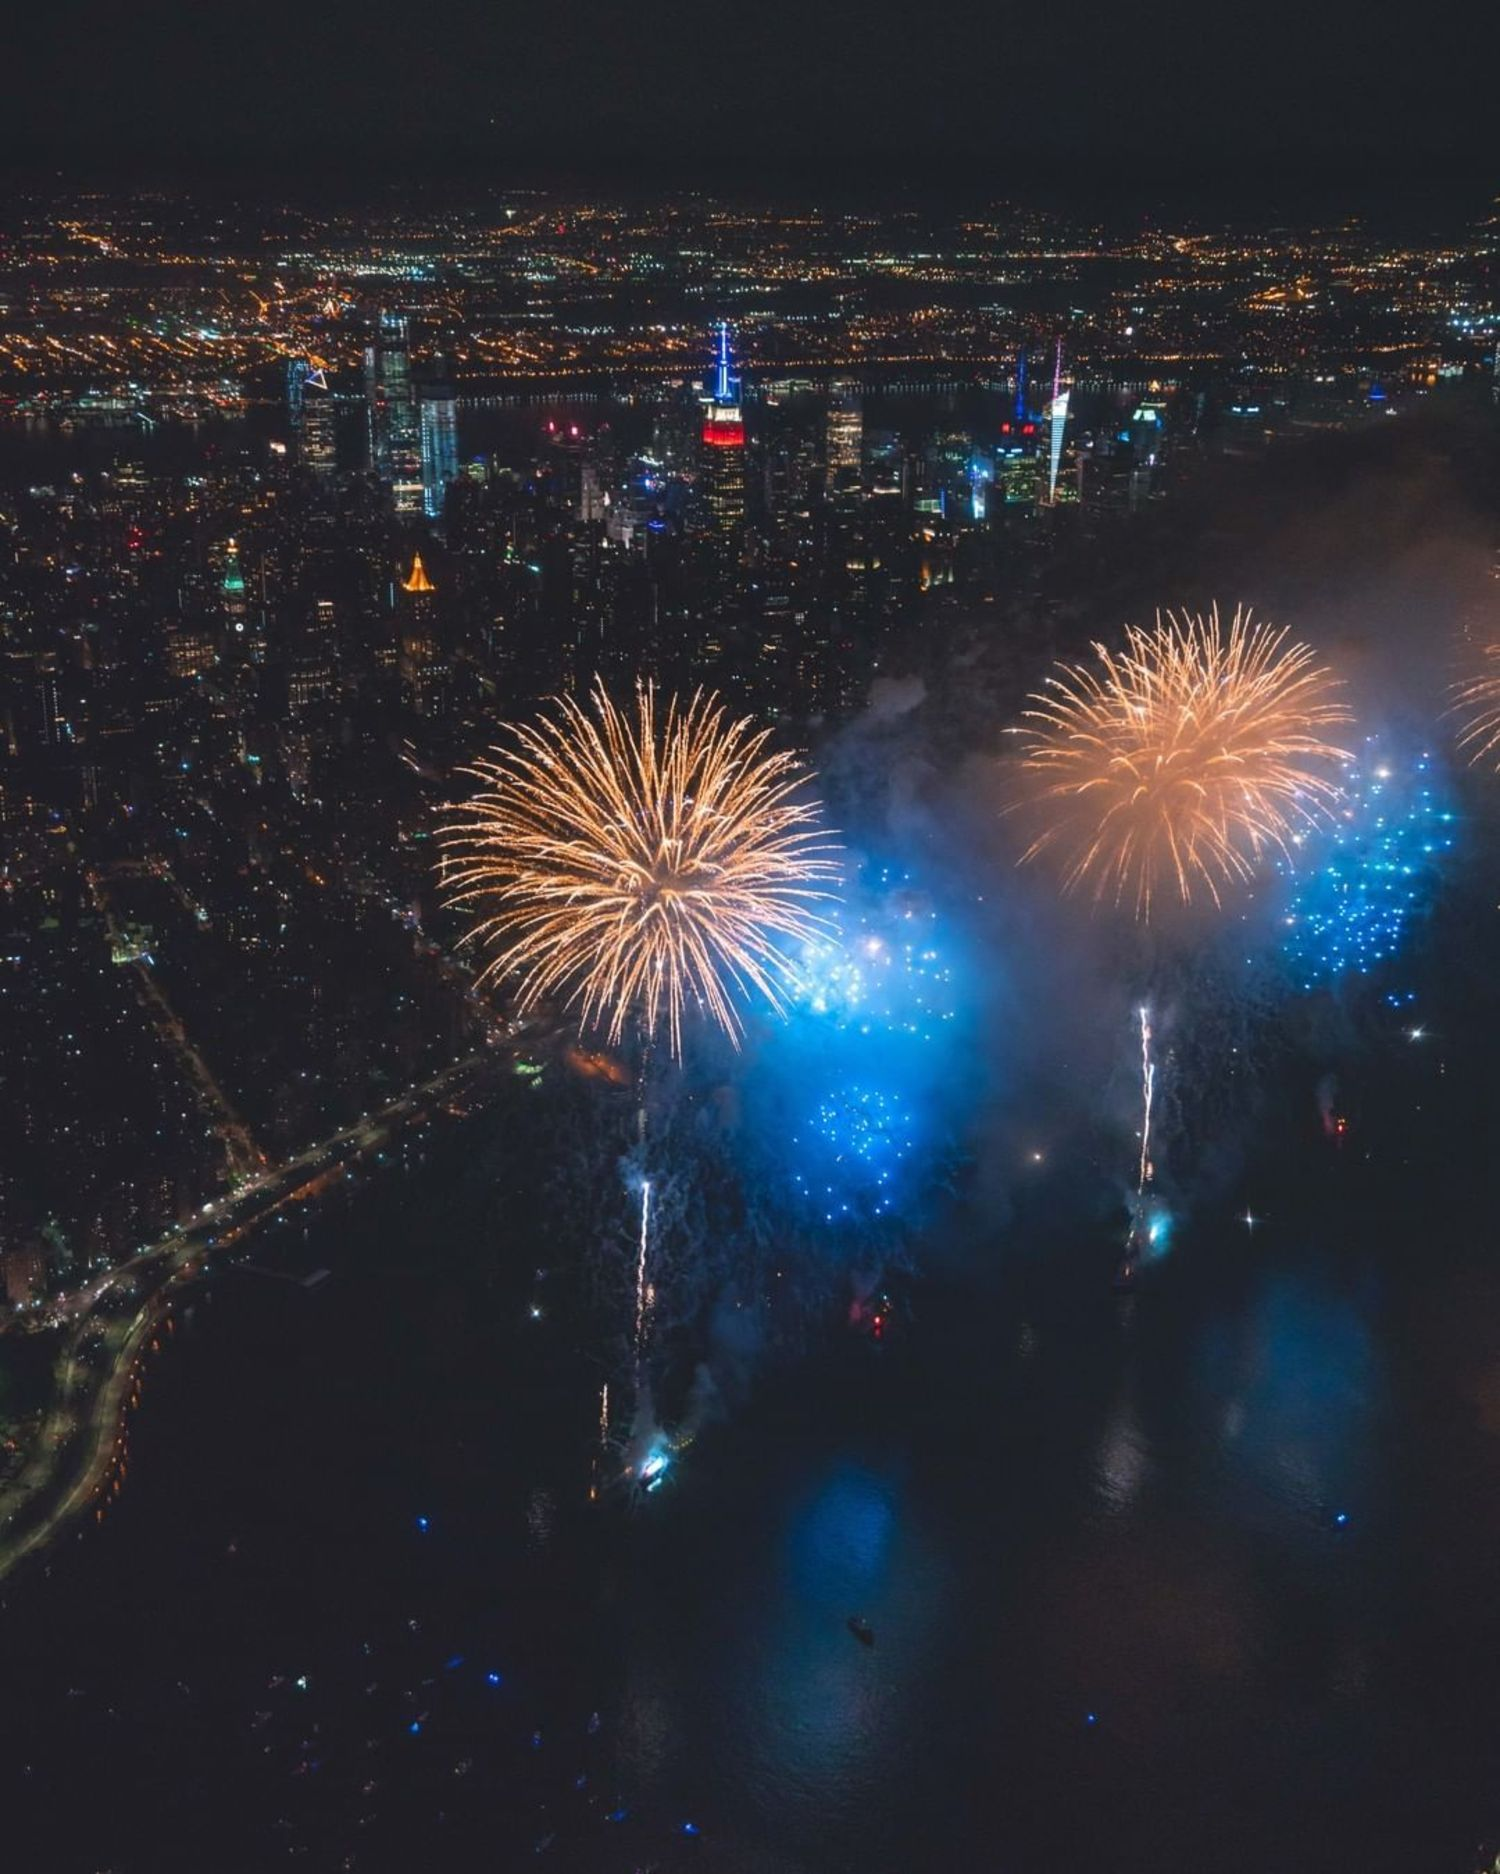 So, about last night... Epic right? 💙GET 50% OFF ALL FLIGHTS! 💙 ⭐️ | Code: FIREWORKS | ⭐️ 🚁 Purchase with the ultimate flexibility. Our Buy Now Schedule Later is valid for more than a year.🚁 Book now: www.FlyNYON.com